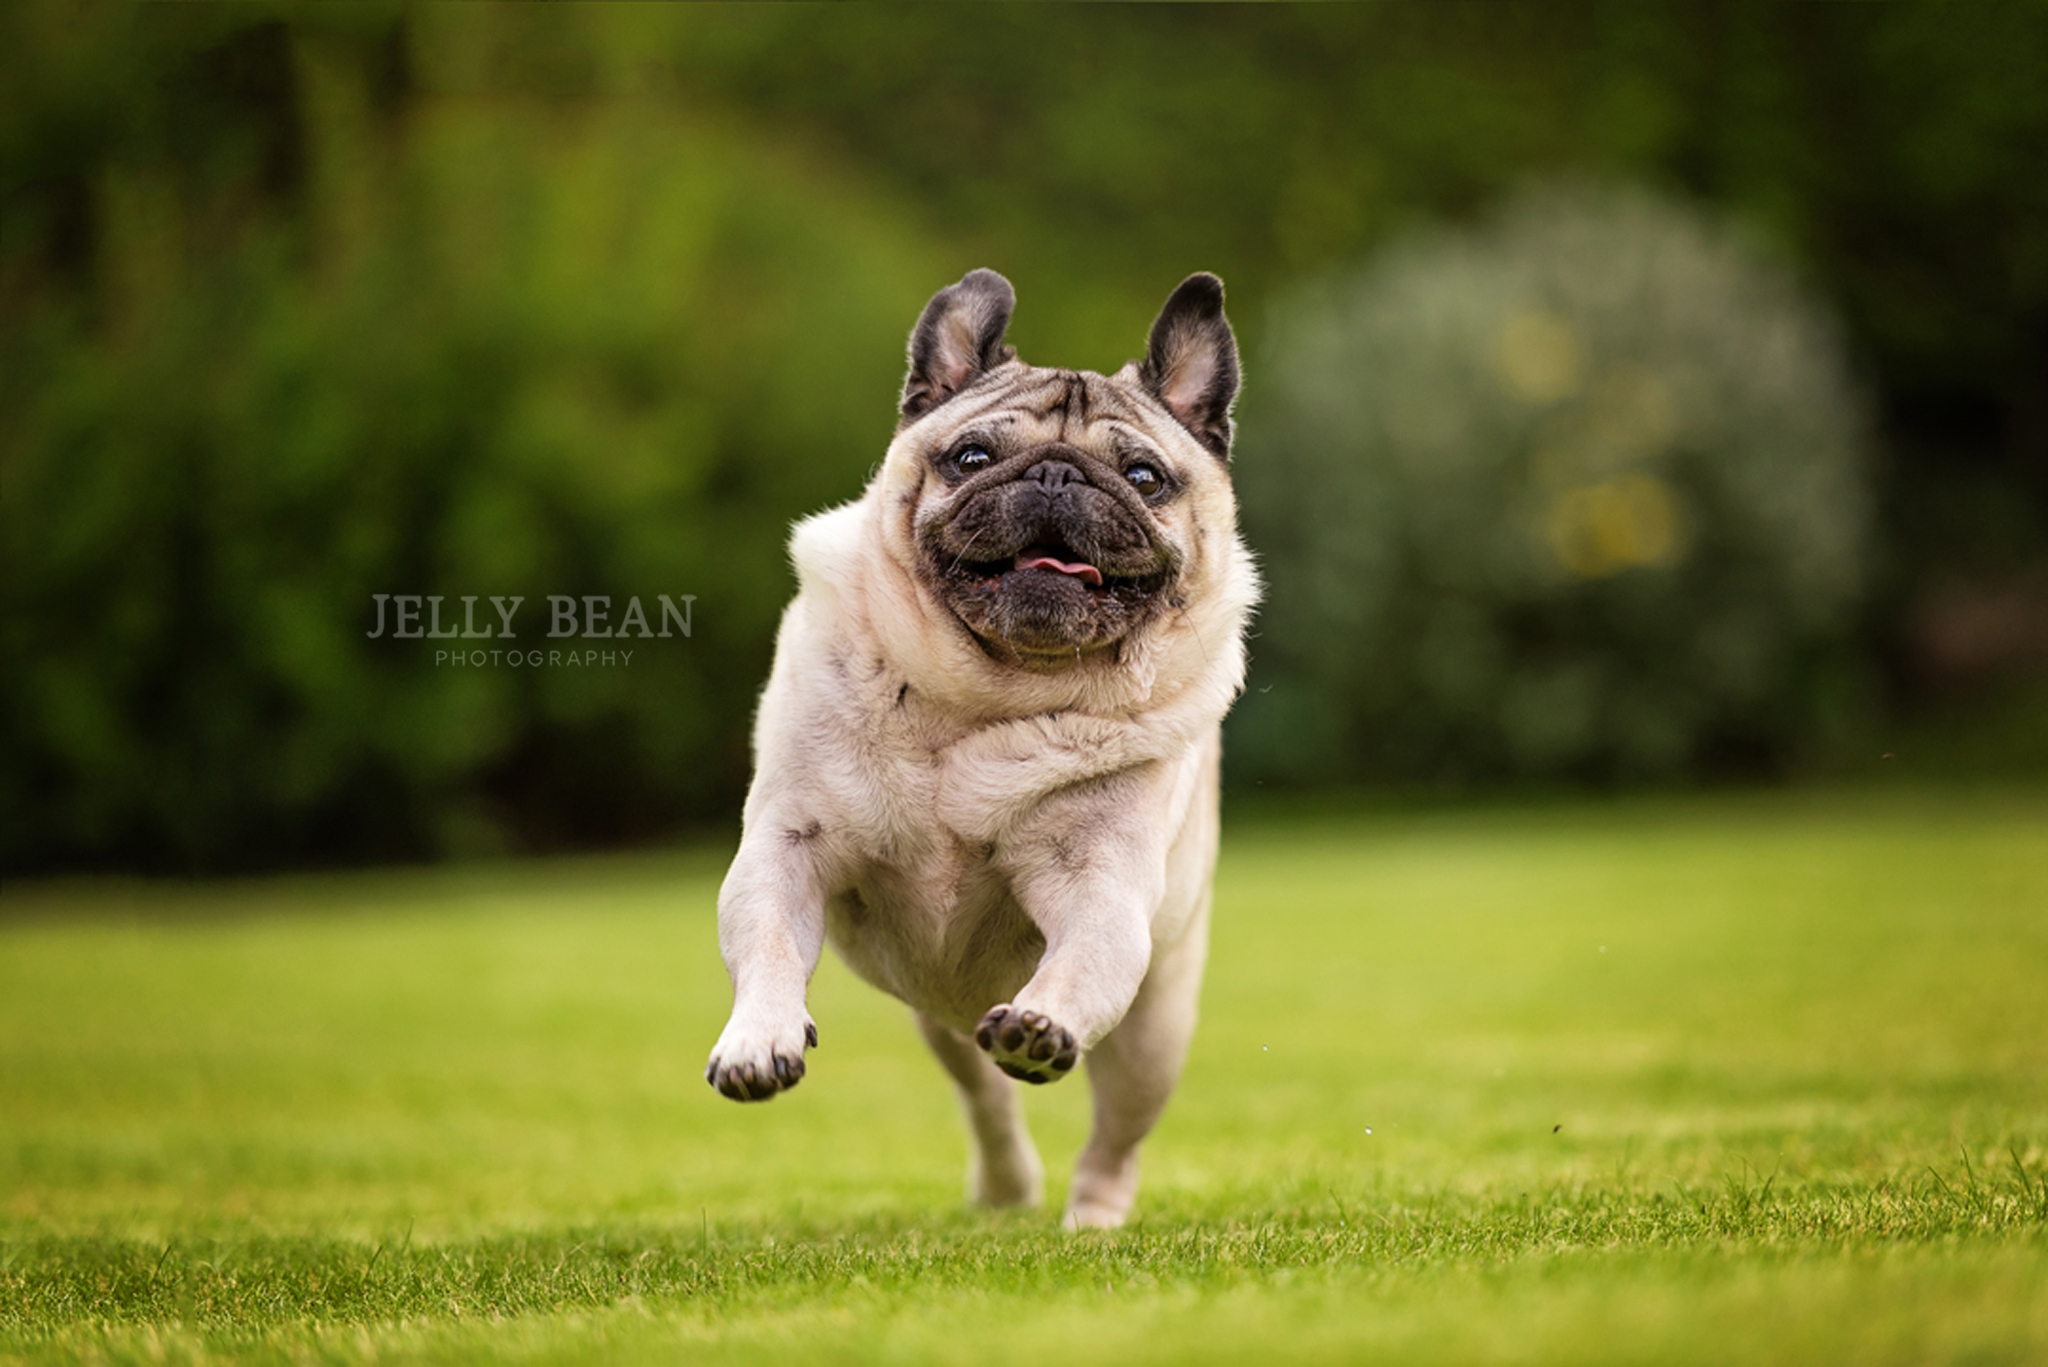 Pug dog running in garden